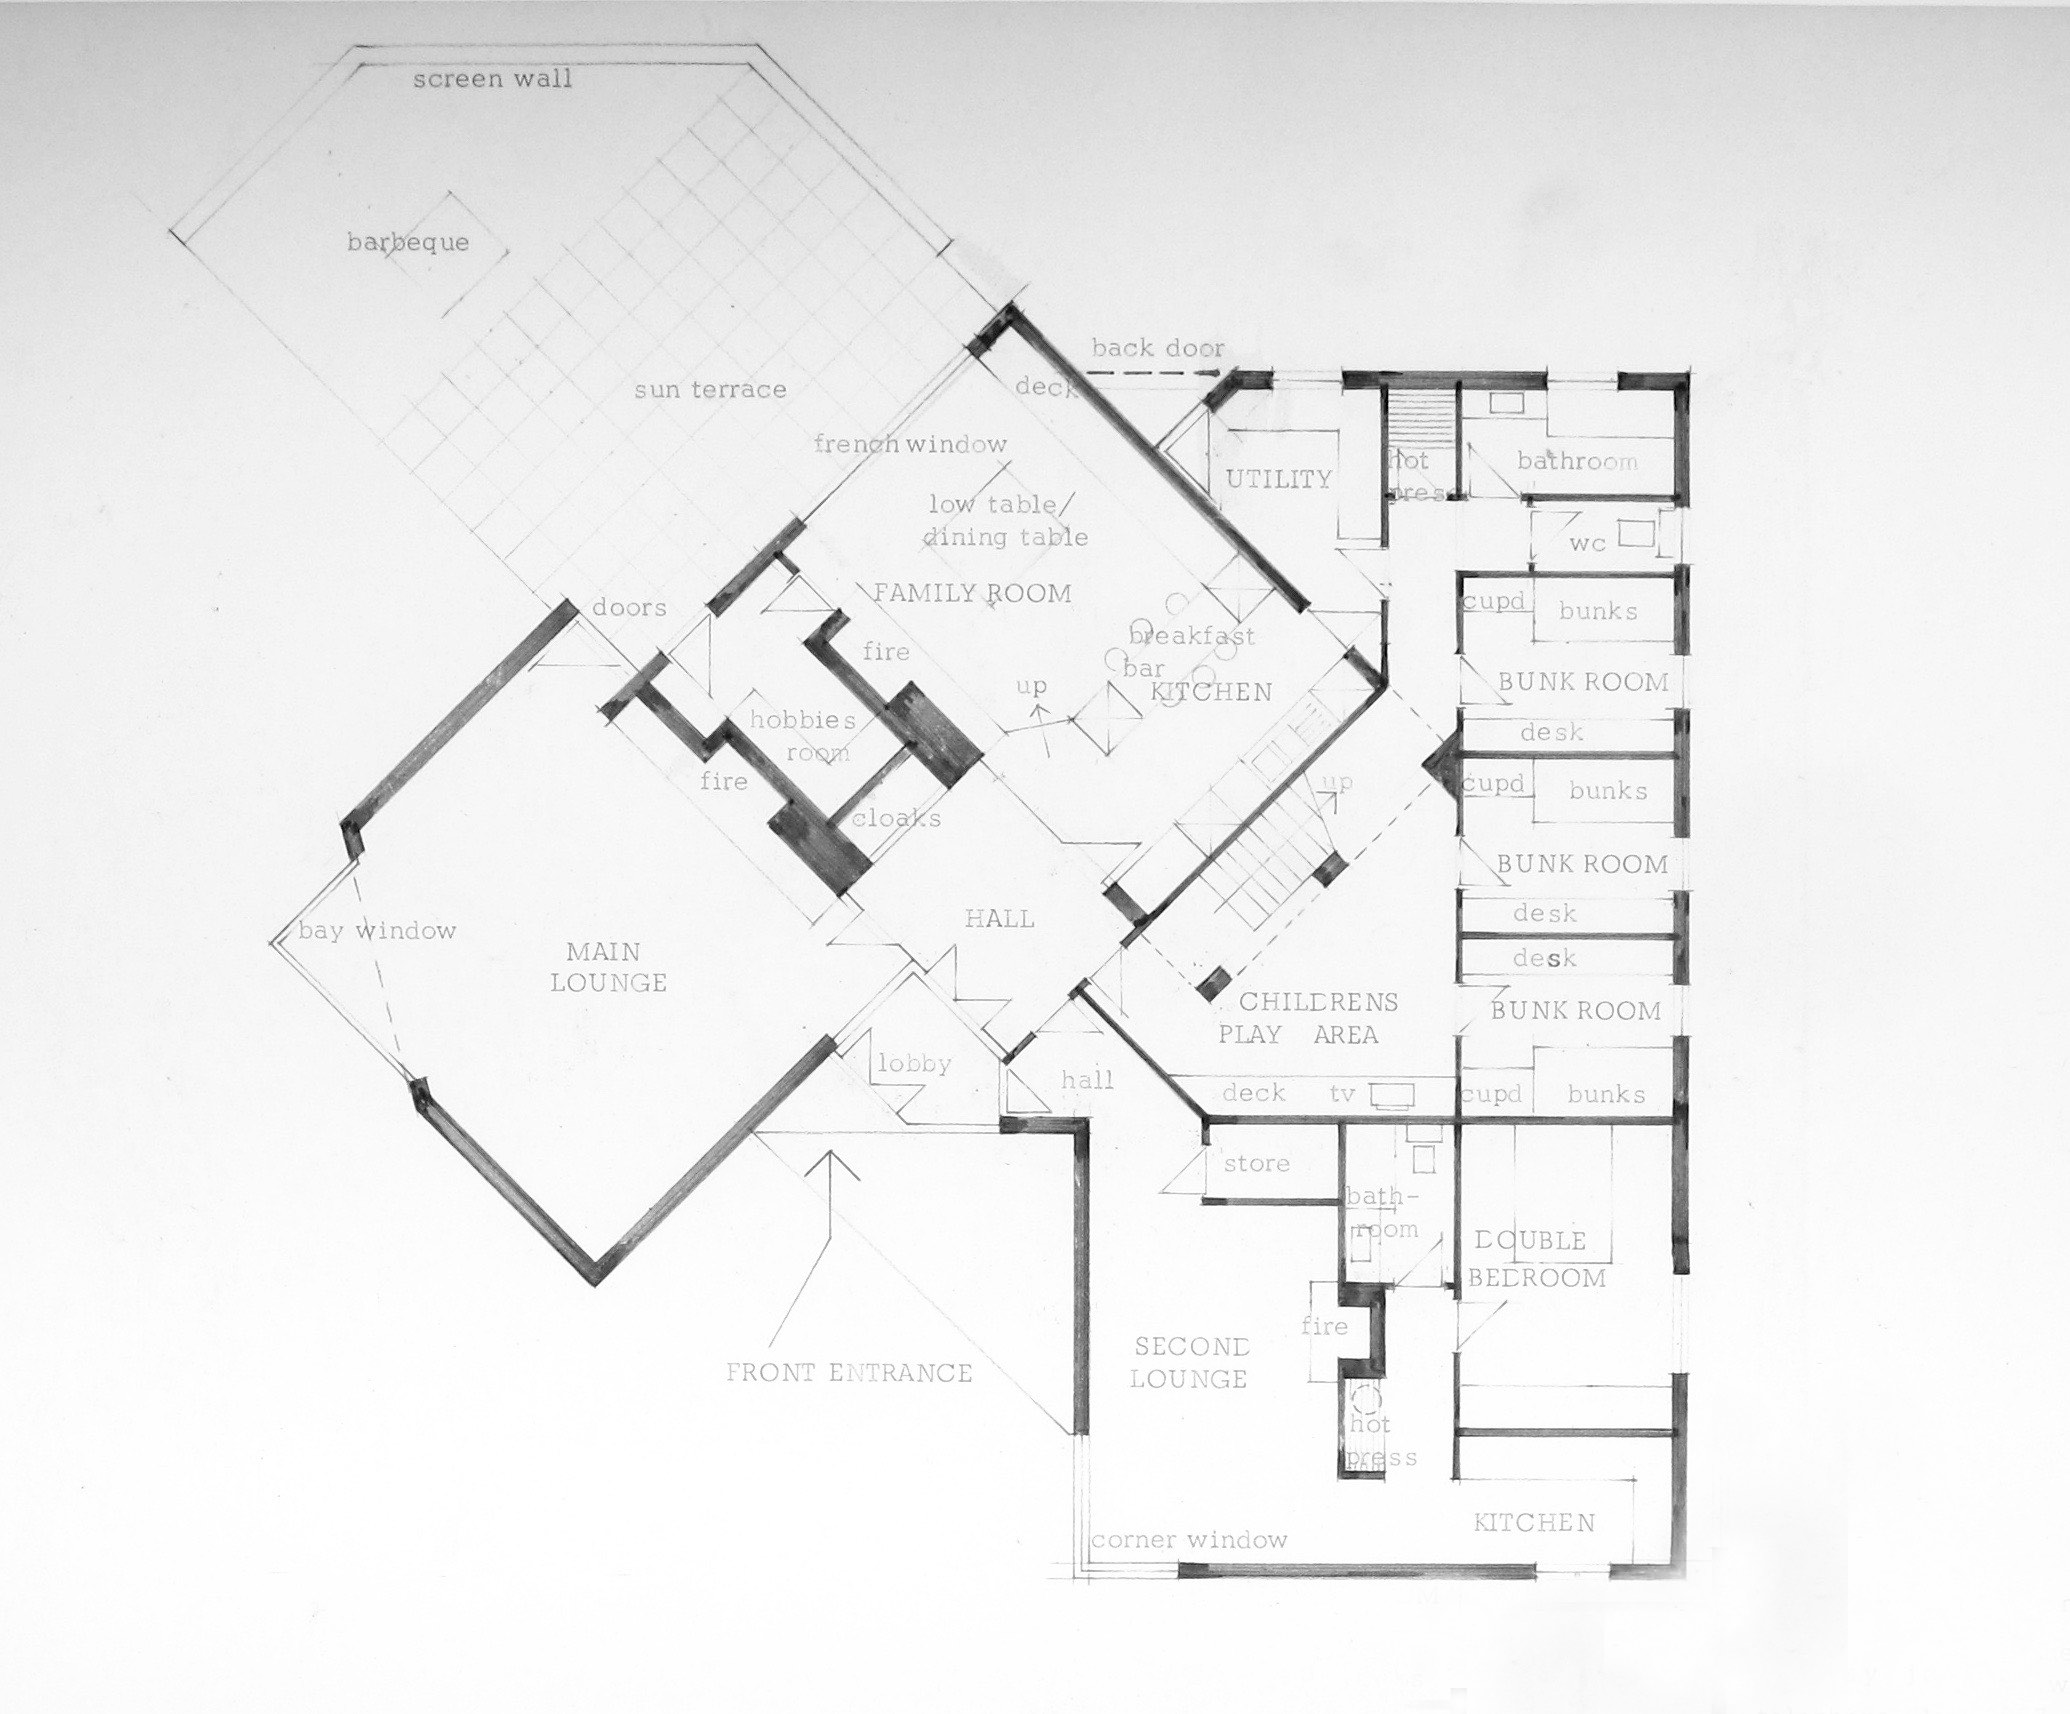 Lower Plan copy 2.jpg